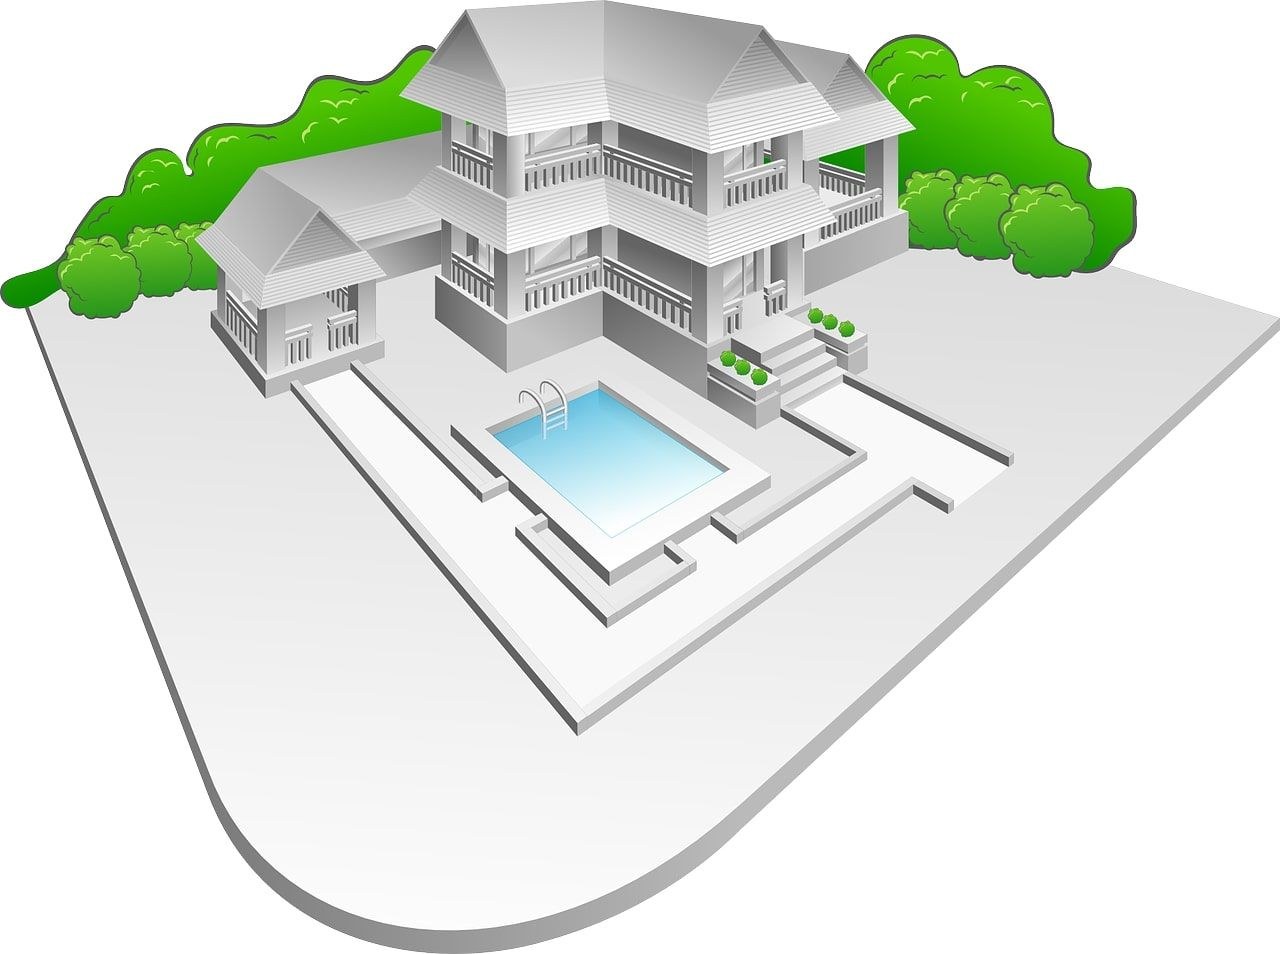 EVERY COMMON SWIMMING POOL PROBLEM: AVOID THEM BY CONSTRUCTING AN EXCELLENT SWIMMING POOL